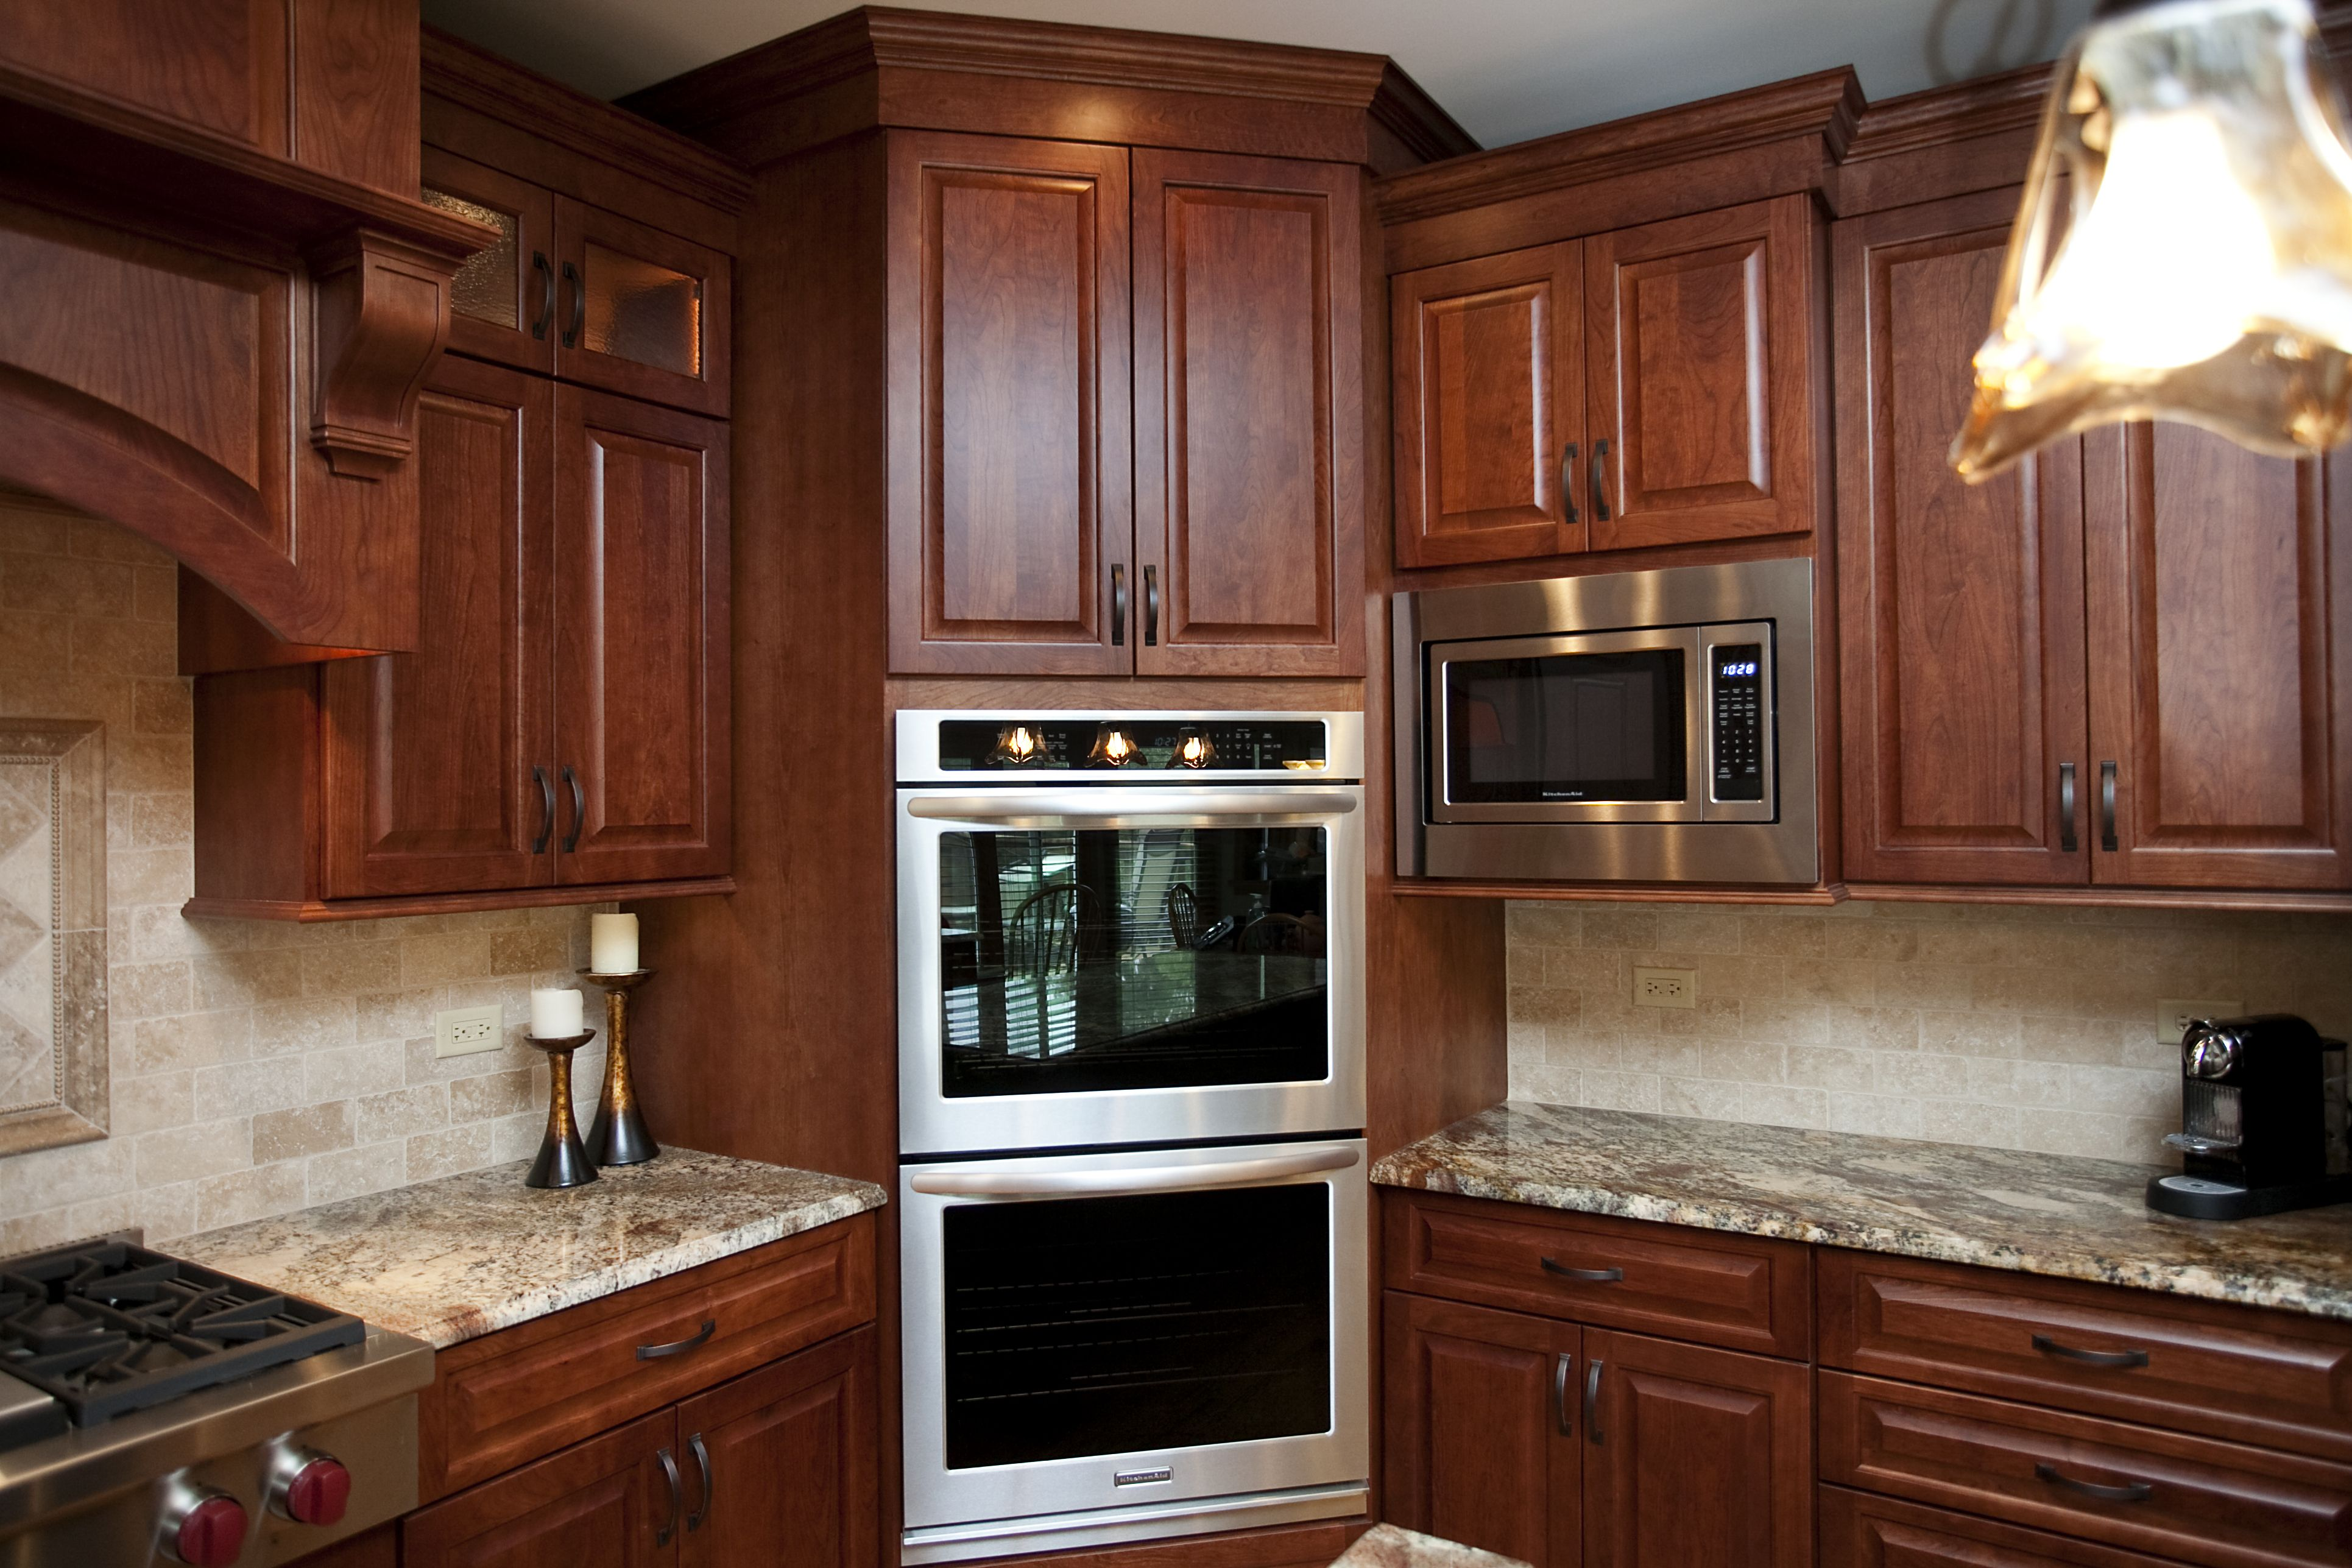 Kitchen cabinets corner oven - Corner Double Oven Cherry Shaker Cabinets Staggered Cabinetry Design